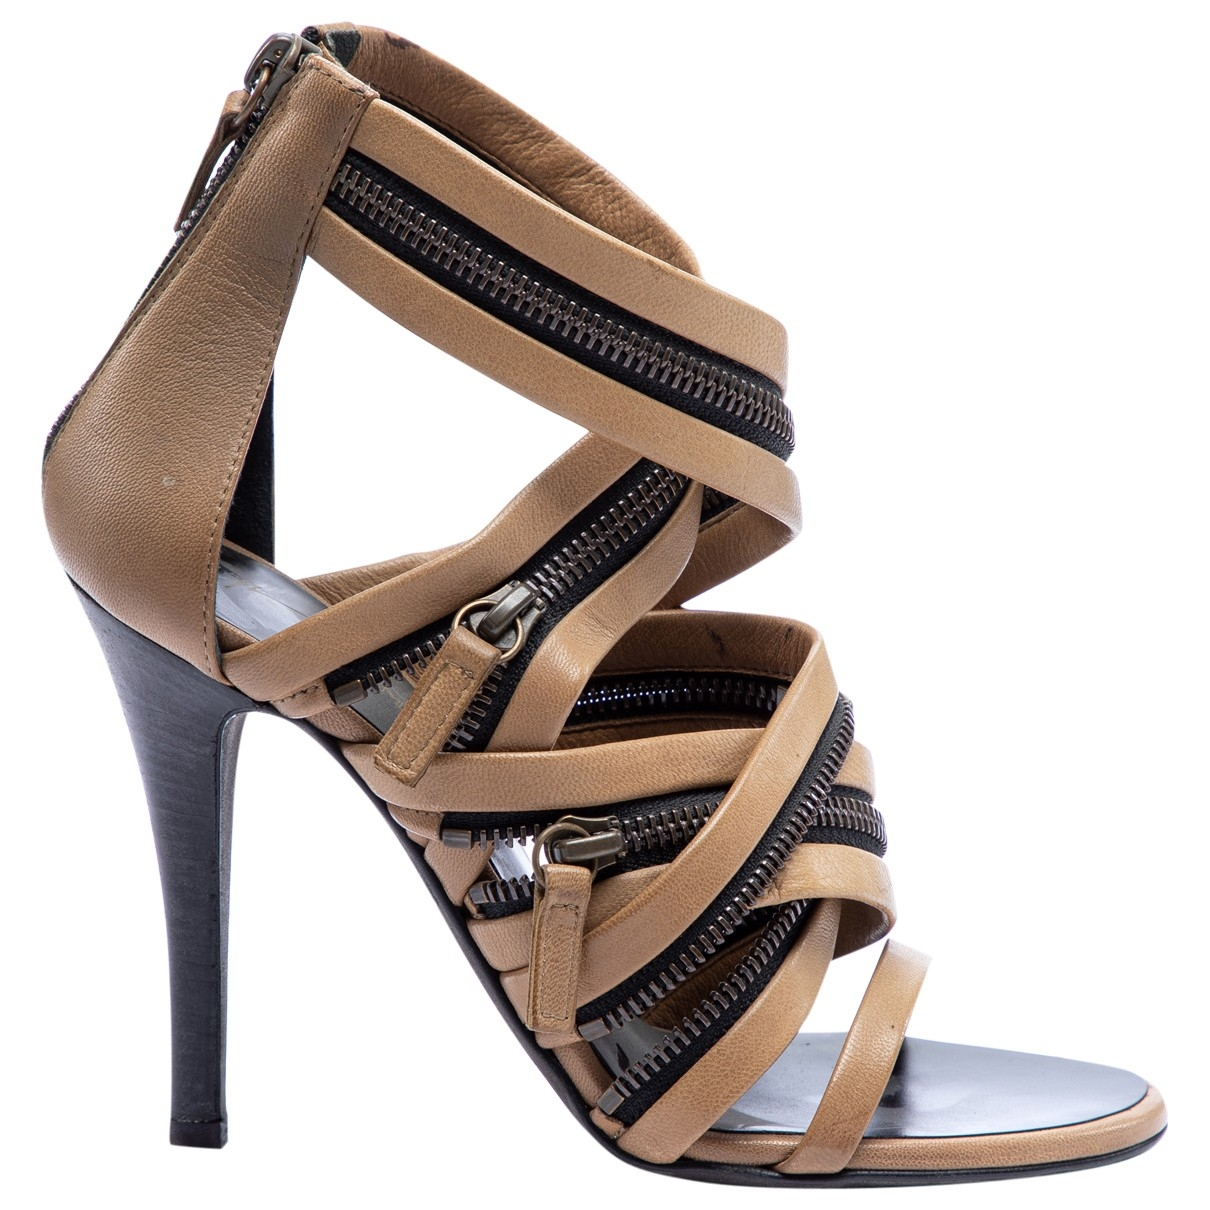 Giuseppe Zanotti X Balmain \N Brown Leather Sandals for Women 36 EU